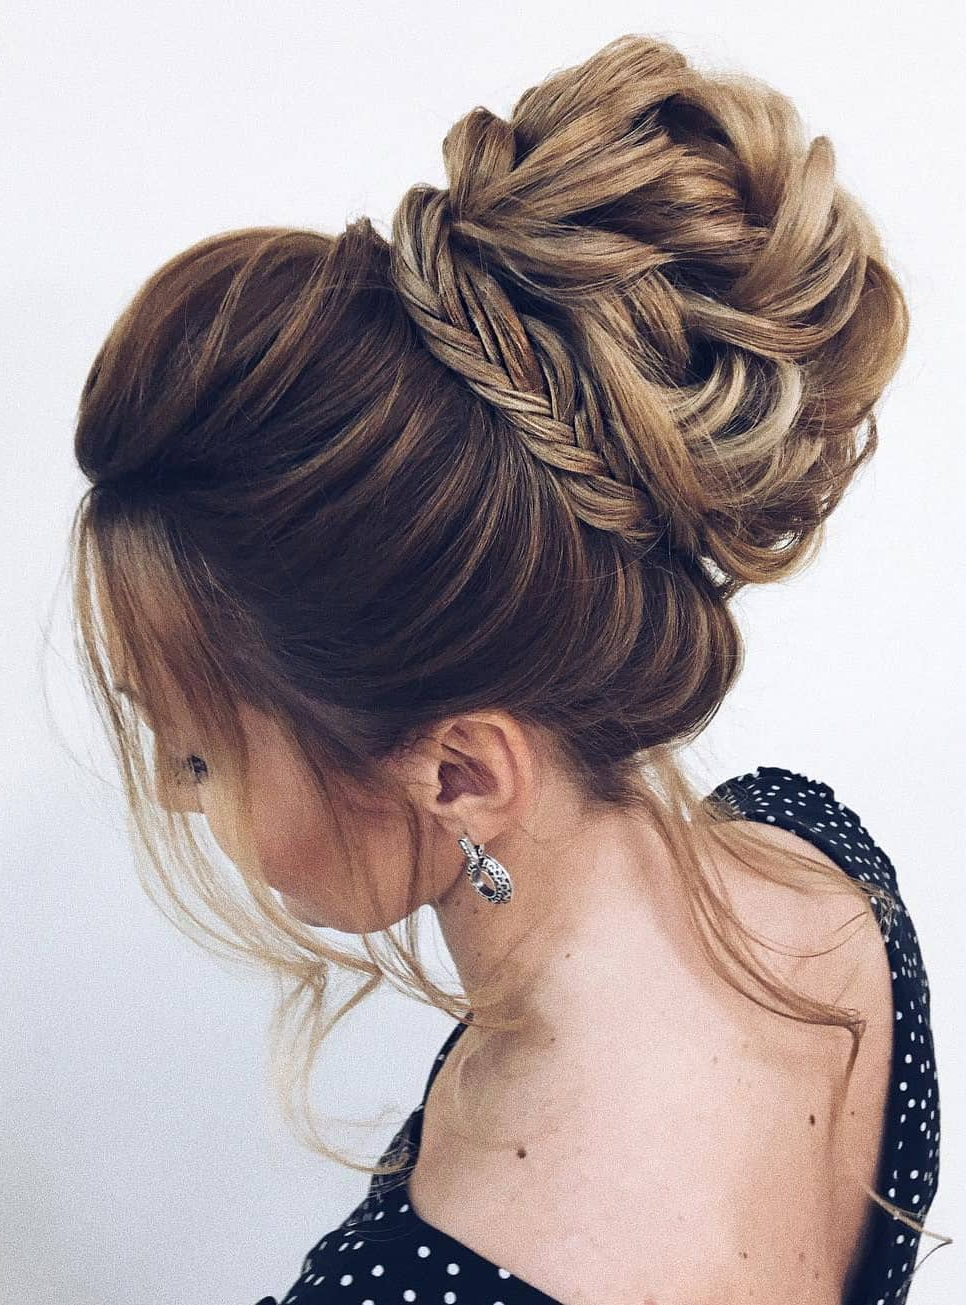 Best 10 Prom Hairstyles That Can Rock The Dance Floor! Within Favorite Complex Looking Prom Updos With Variety Of Textures (View 5 of 20)